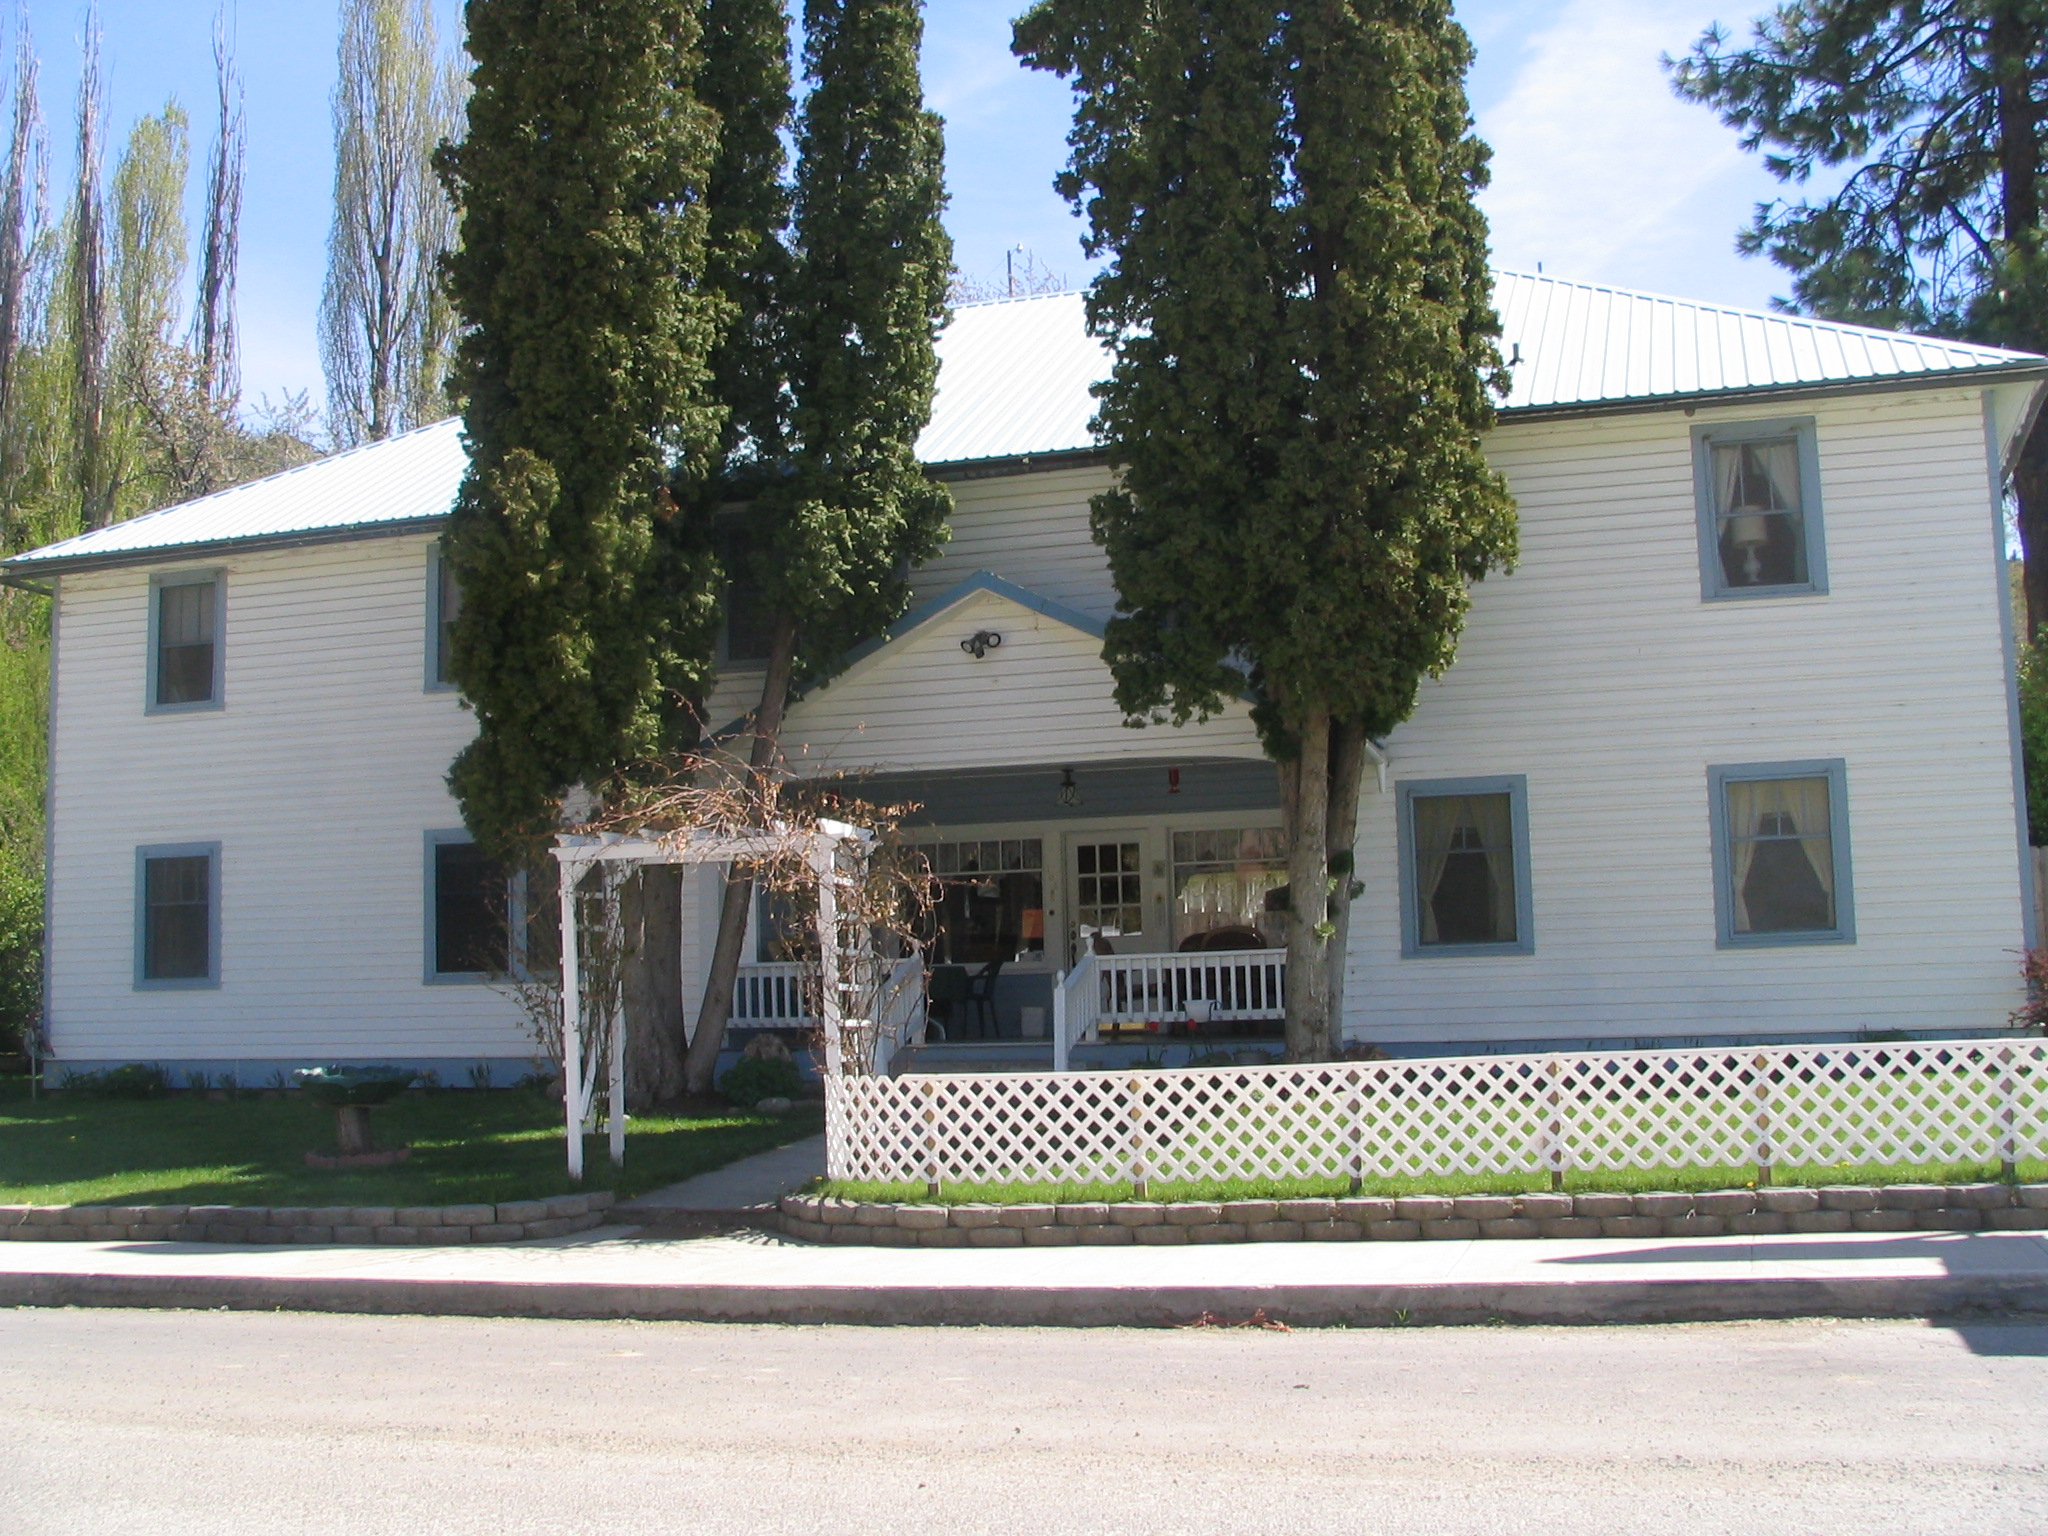 The Oregon Hotel